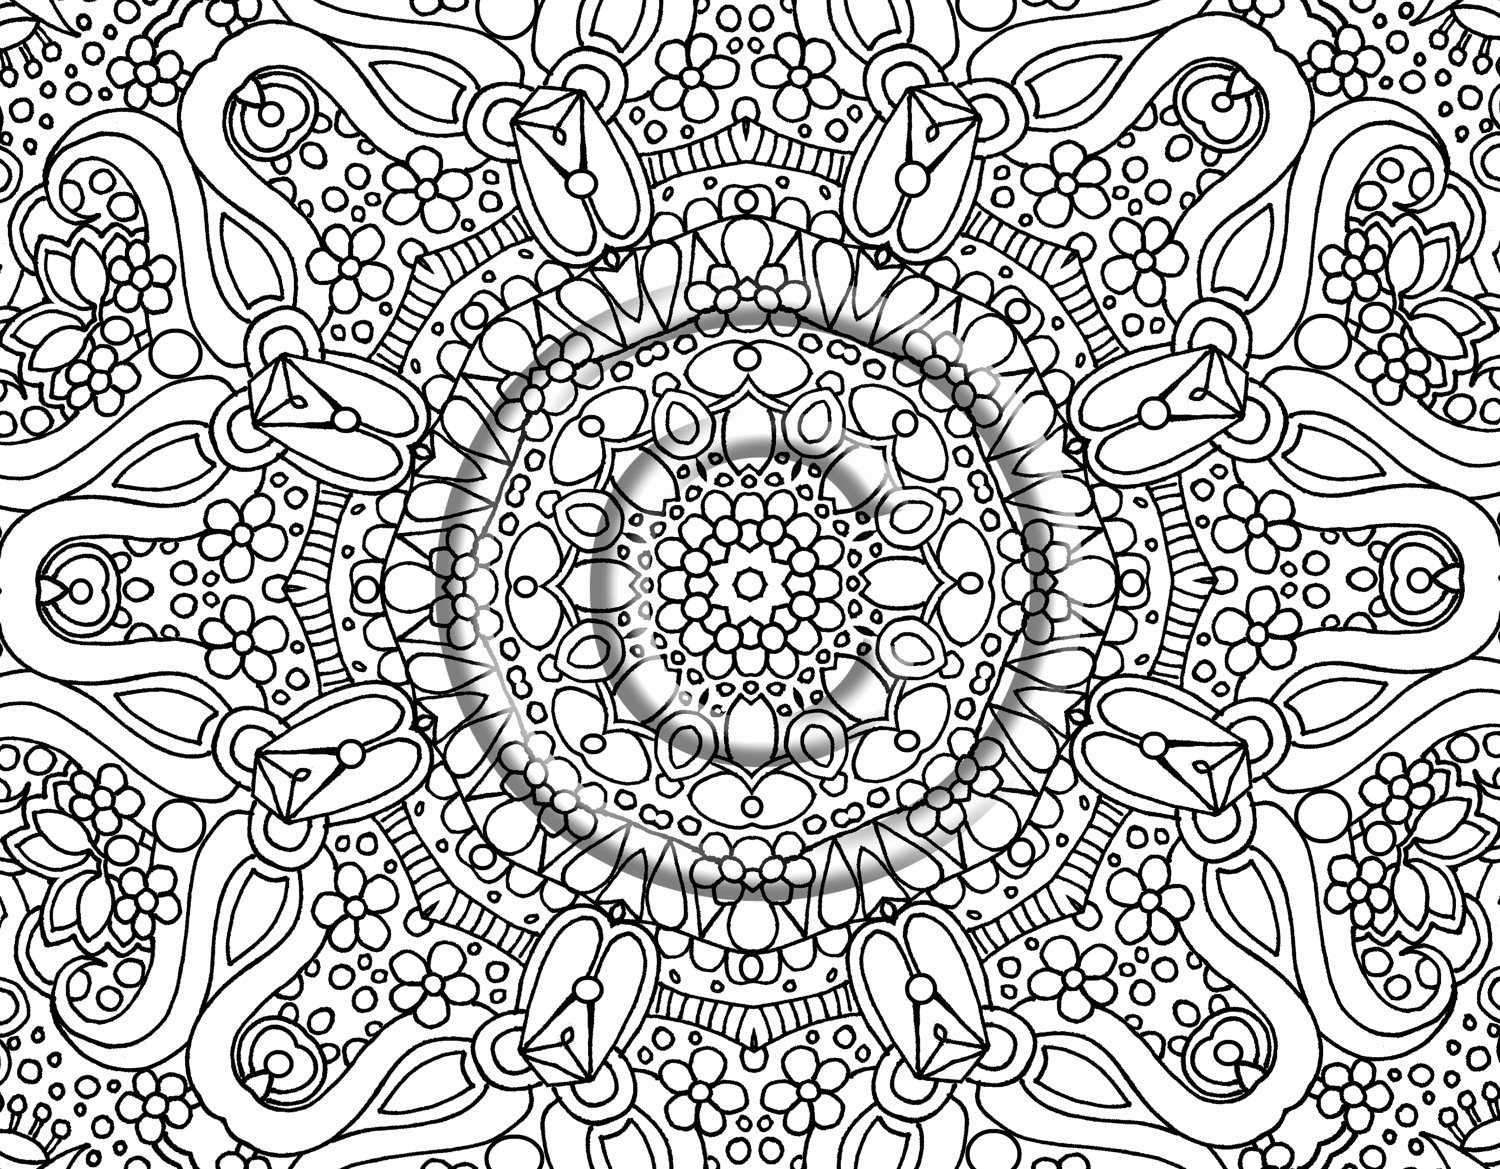 designs coloring pages flowers paisley design coloring pages hellokidscom pages coloring designs